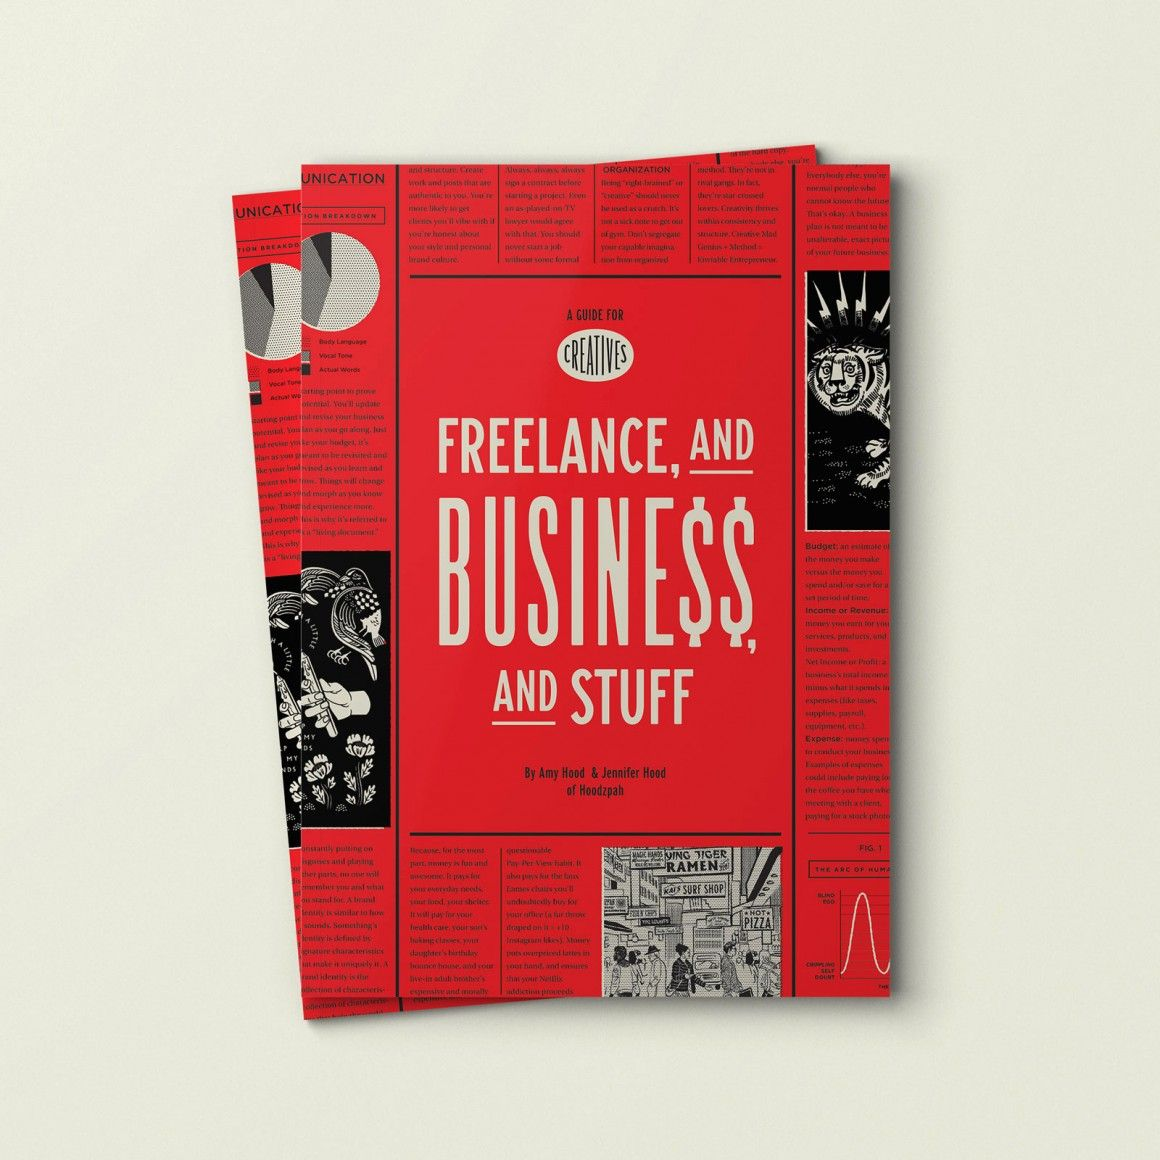 Freelance, and Business, and Stuff Paperback